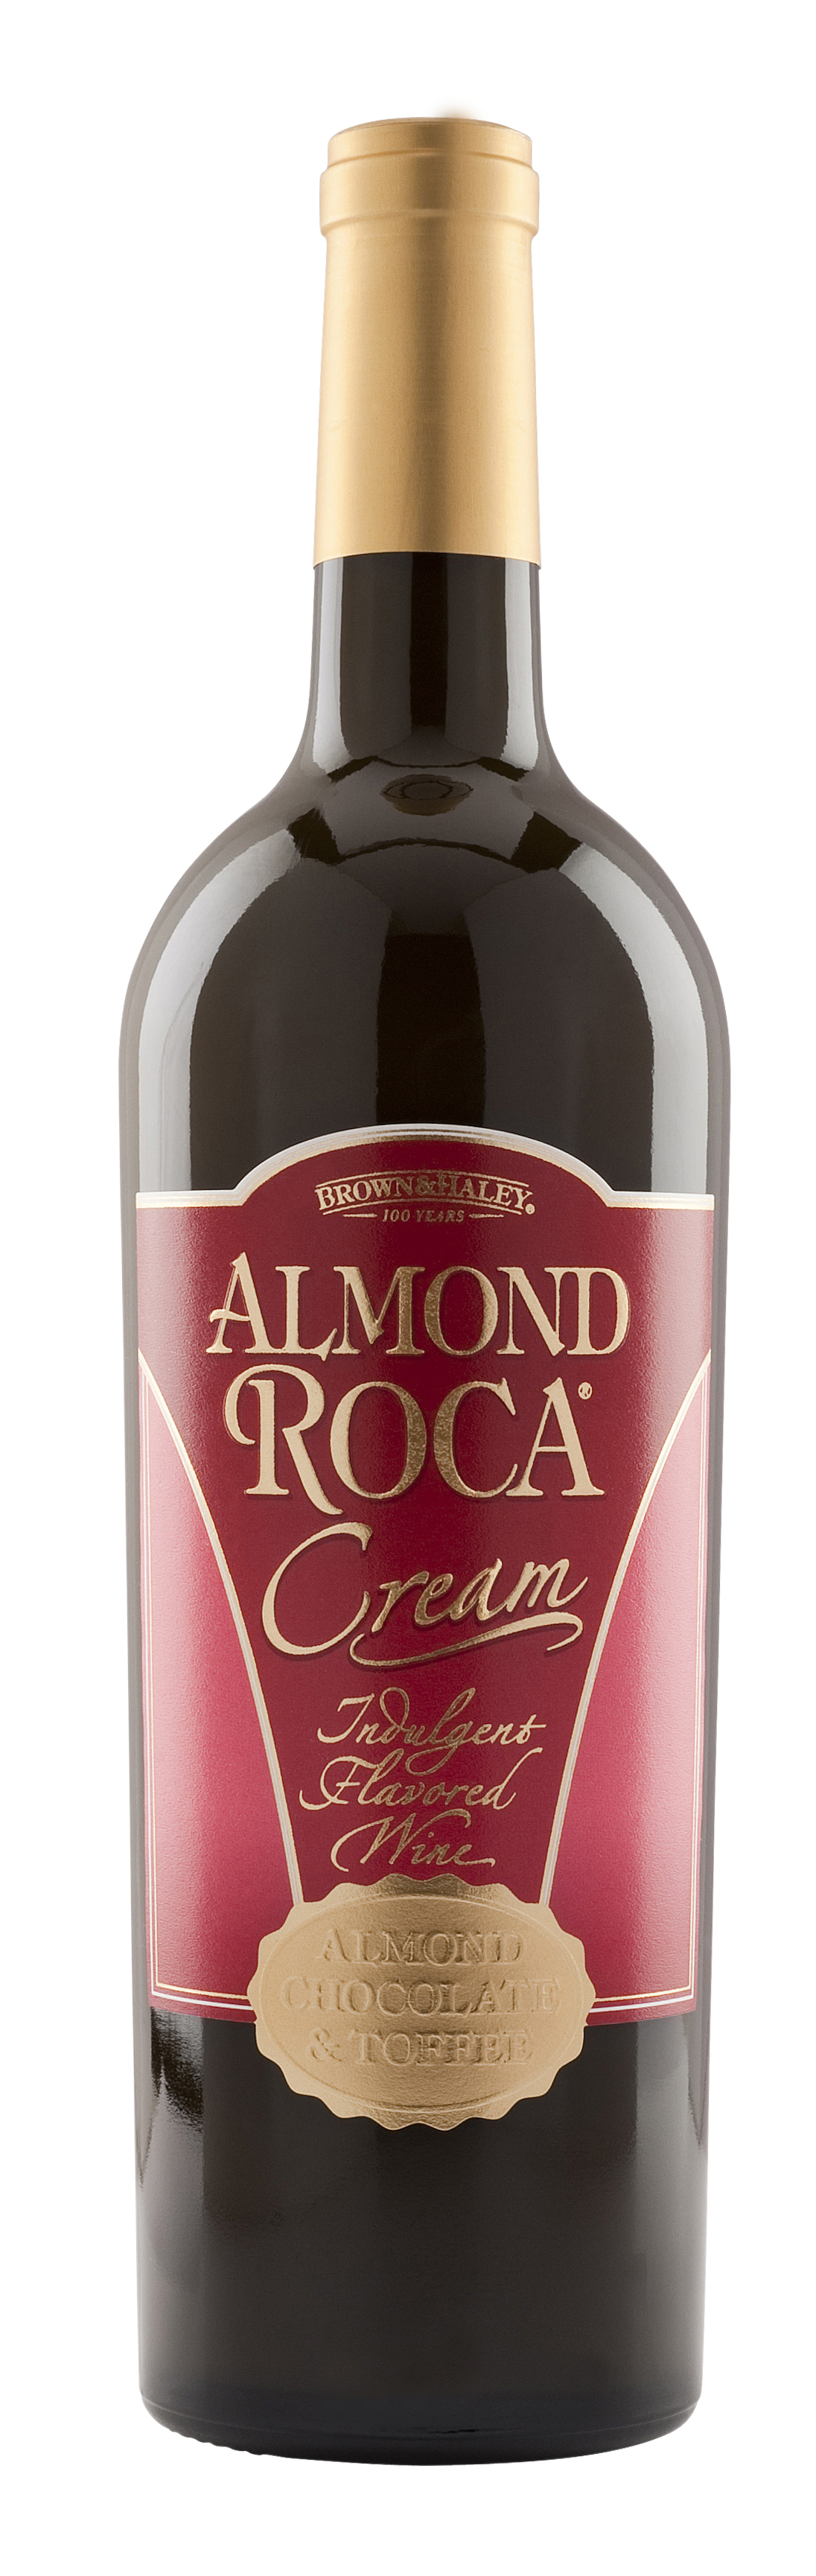 Almond Roca Cream is a new collaboration between famed confectionary ...